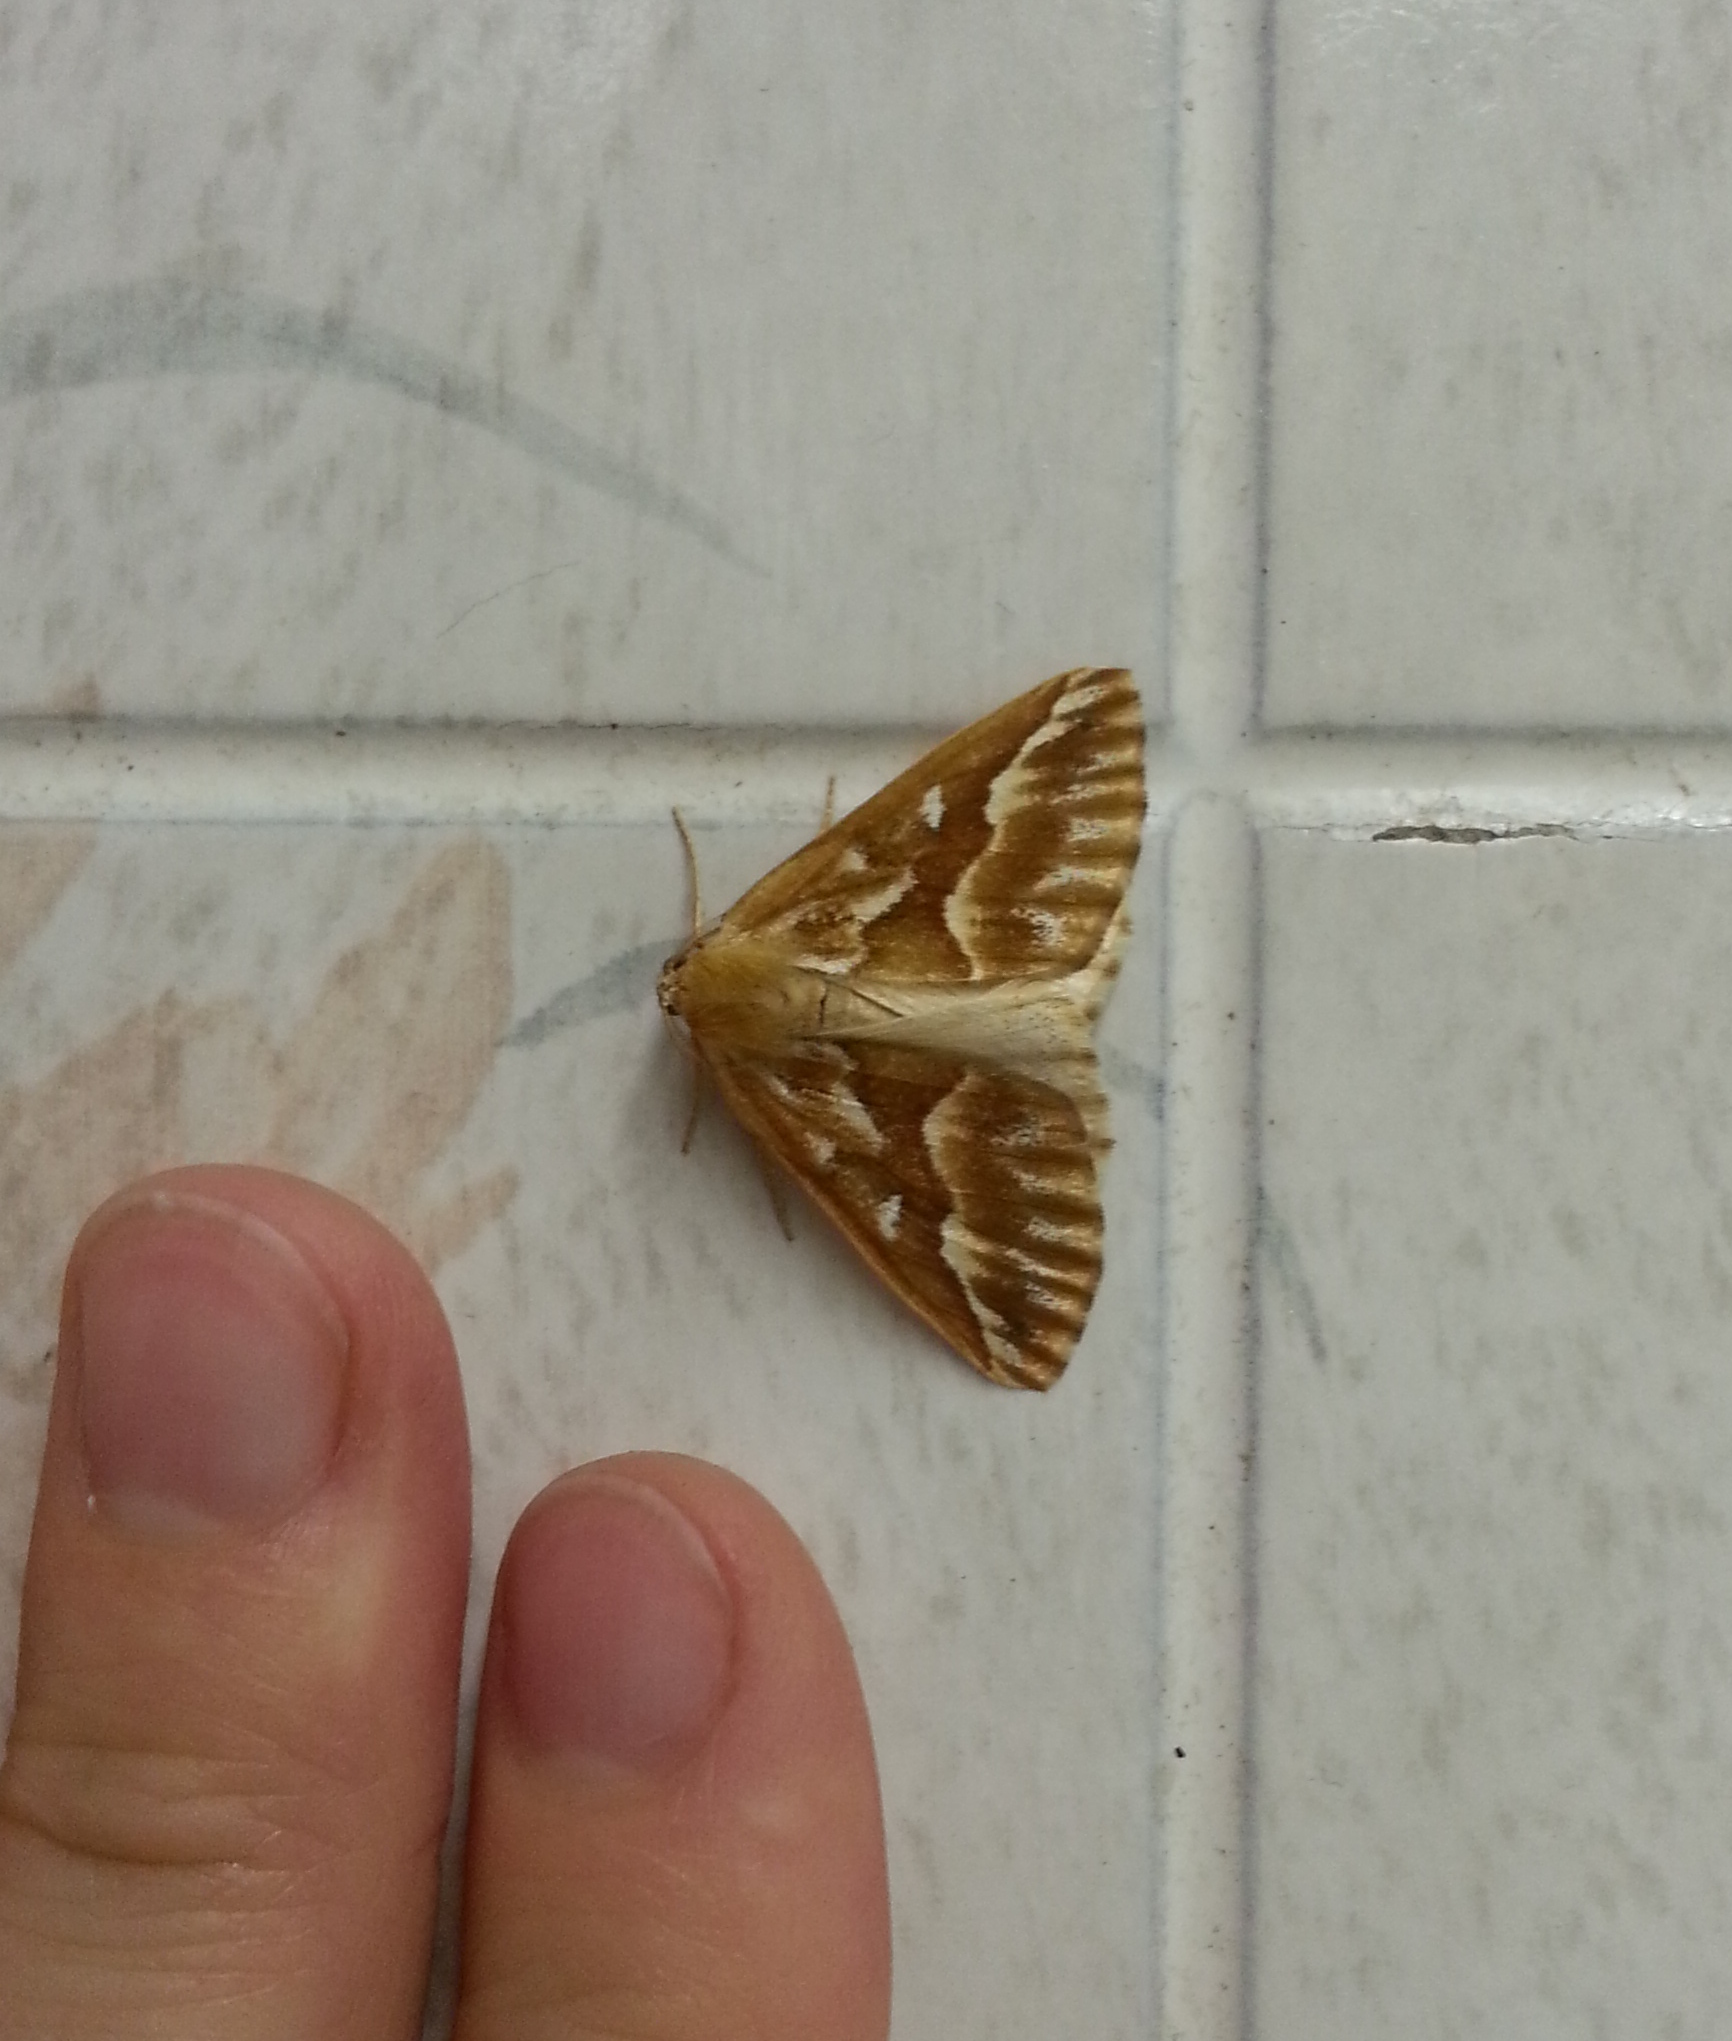 Northern Pine Looper moth, with fingers for size reference